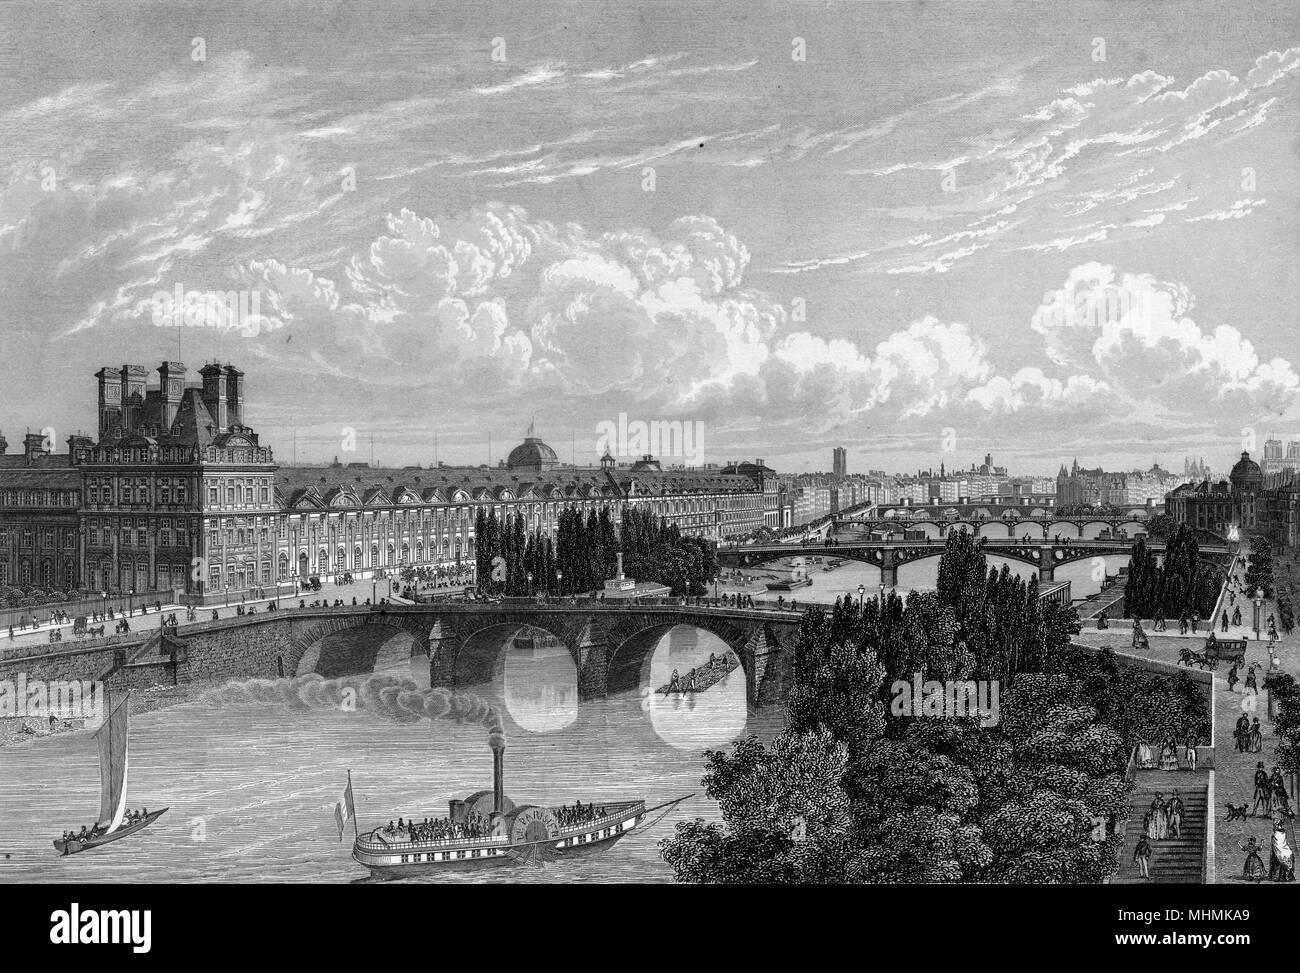 the Seine, with the Louvre on the left, viewed from the Quay d'Orsay      Date: circa 1845 - Stock Image